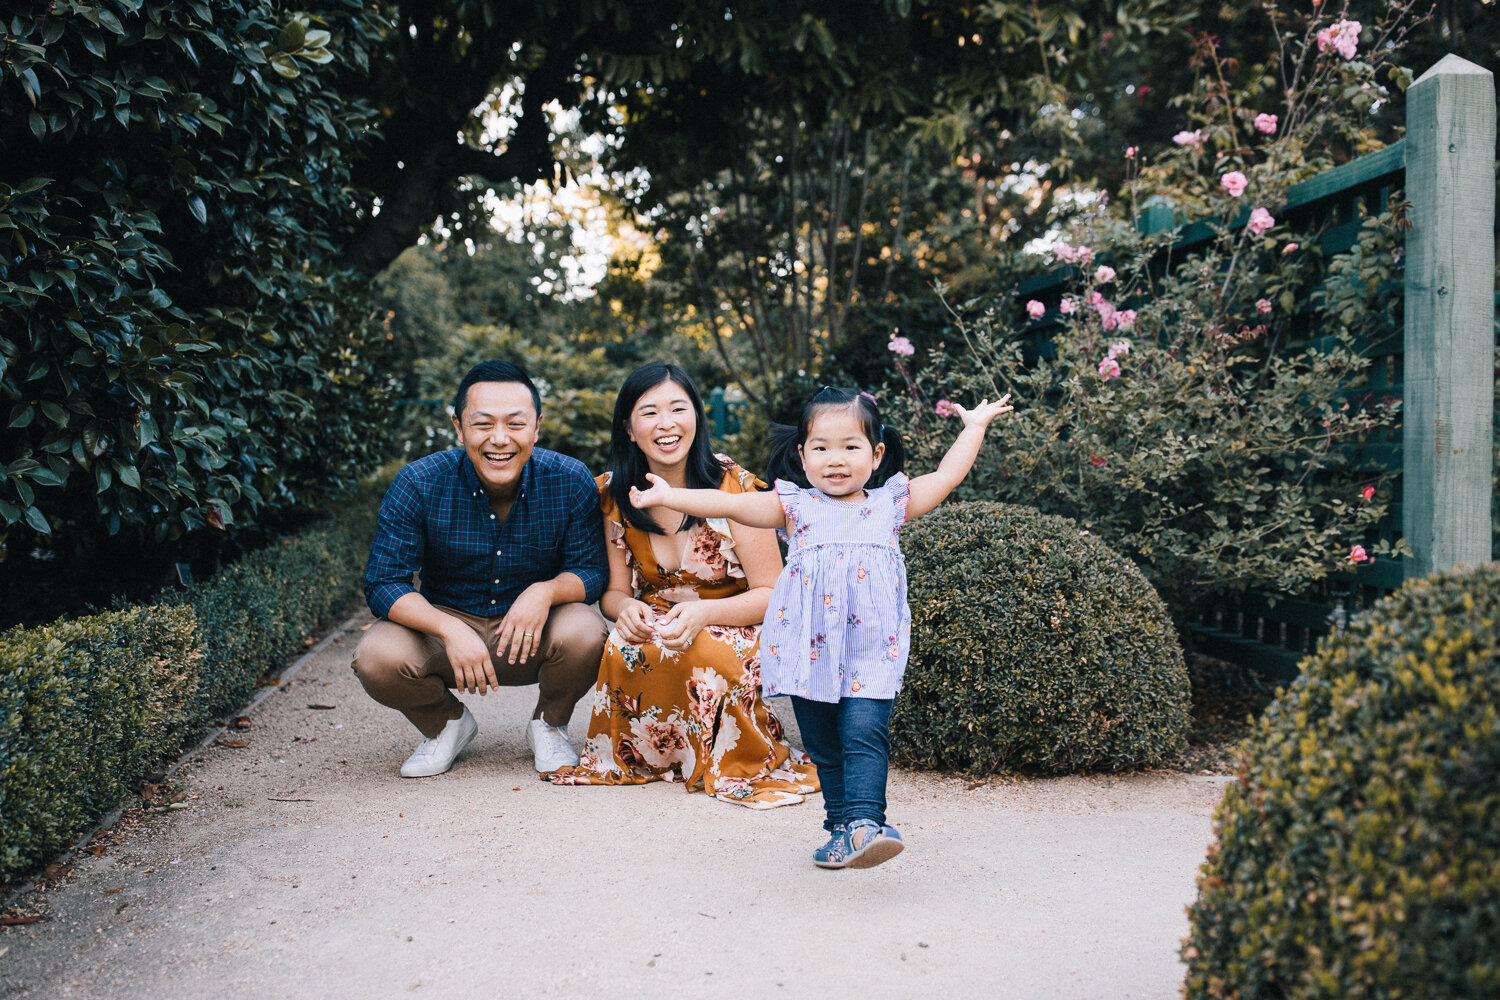 2019_09_ 082019.09.12 Kat Leung Family Session Edited For Web 0022.jpg